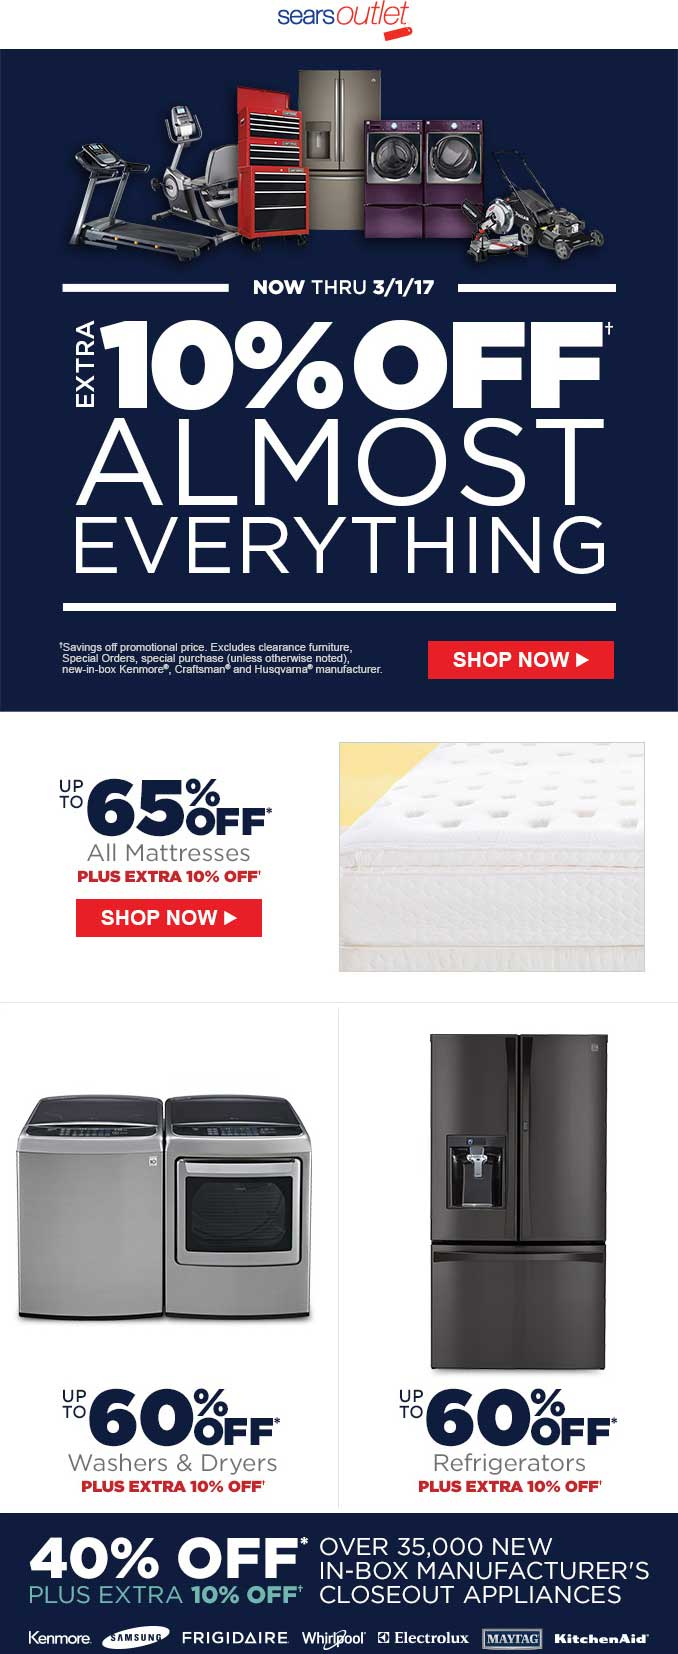 sears outlet coupons free piece of clothing today at sears outlet